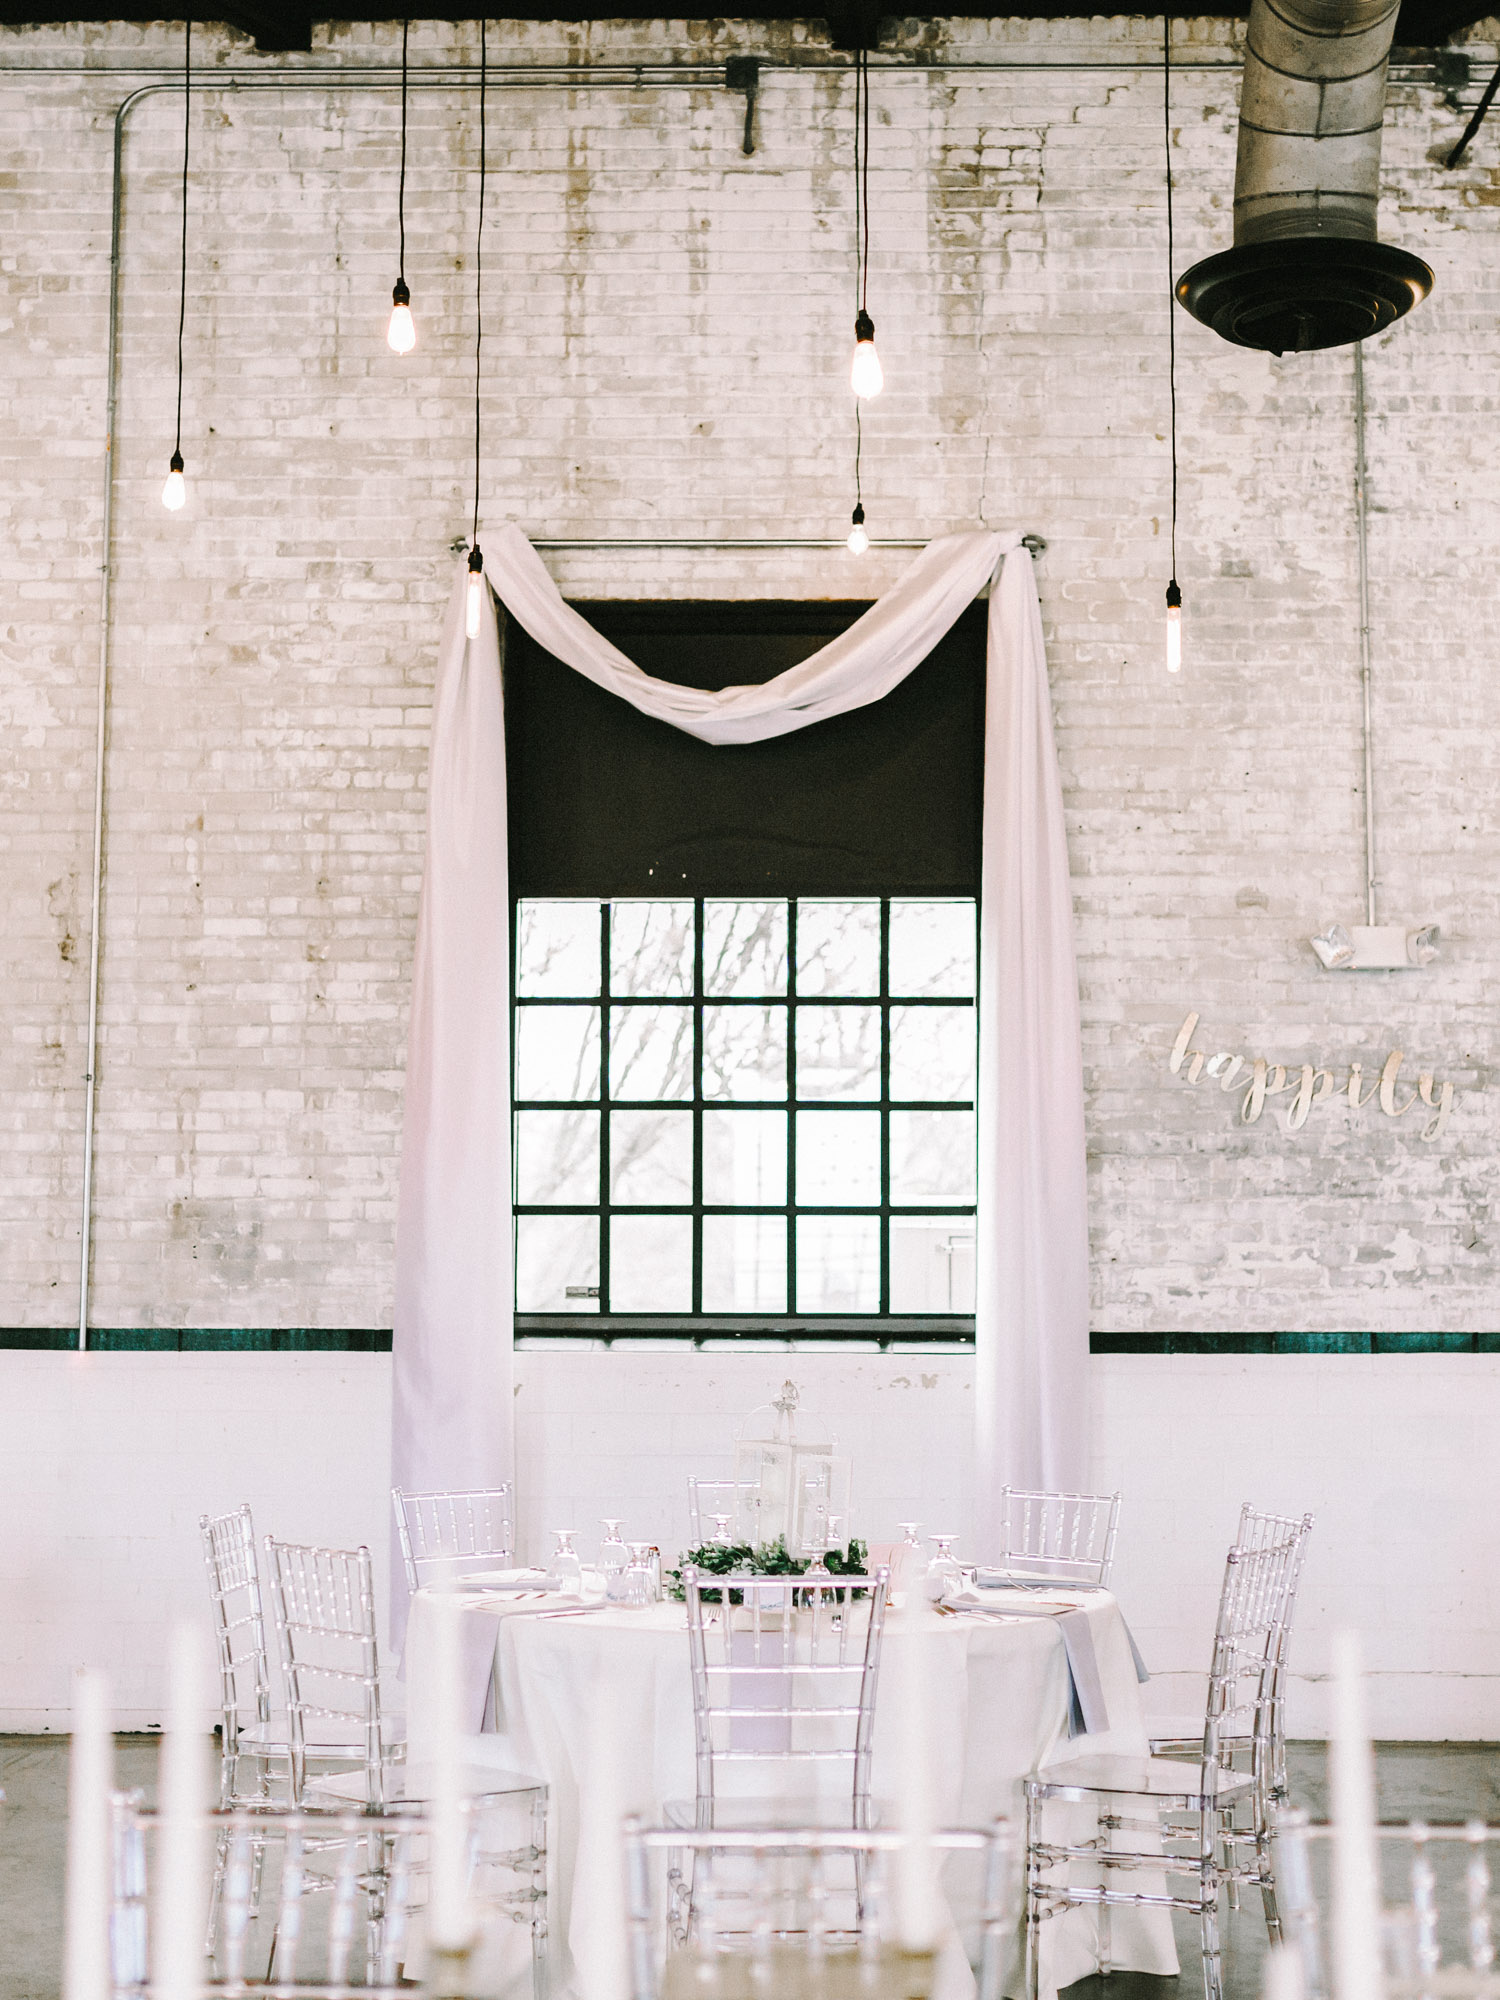 White and blush reception table setup at The Brick, an industrial South Bend wedding venue with hanging Edison bulbs and light colored brick